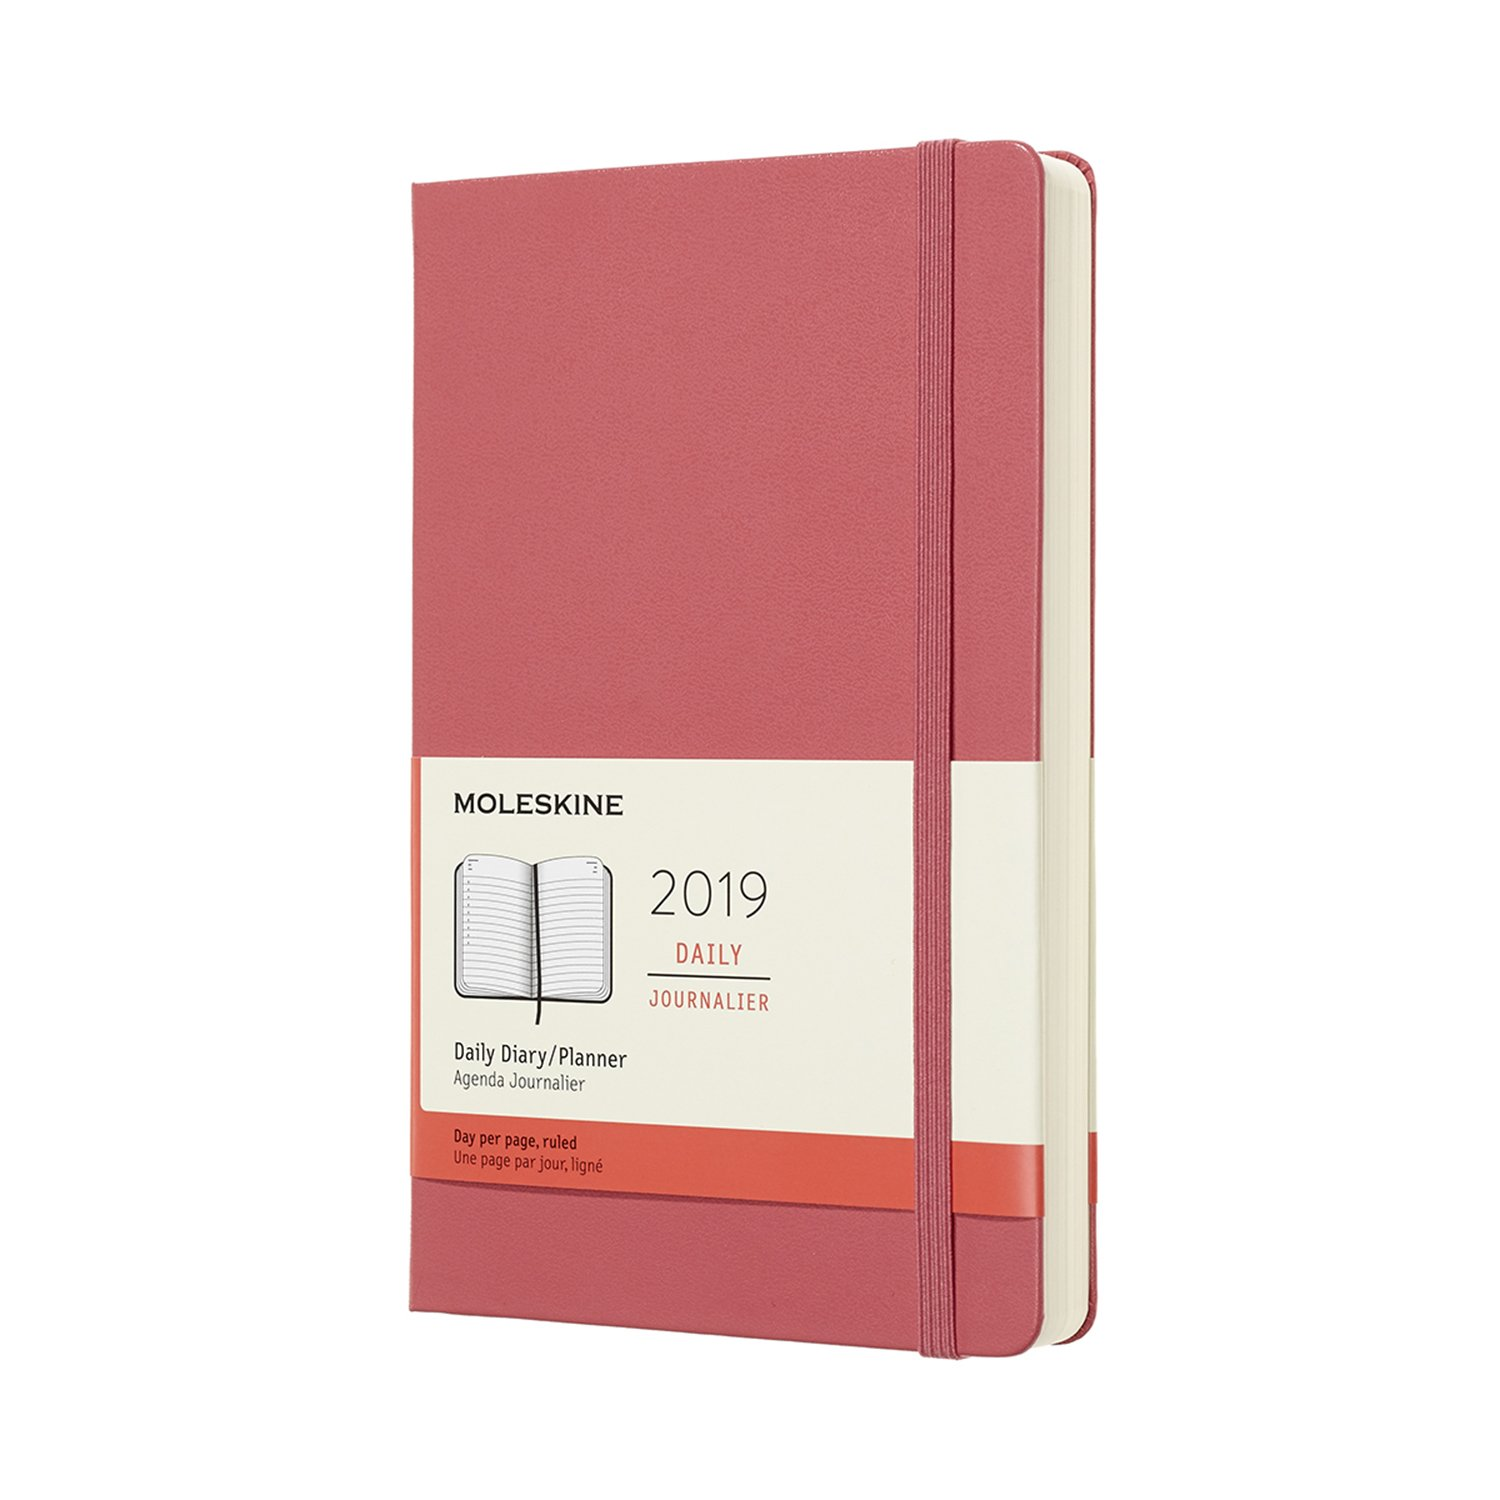 Moleskine 2019 12M Daily Large Daisy, Large, Daily, Pink Daisy, Hard Cover (5 x 8.25) DHD1112DC3Y19 NON-CLASSIFIABLE